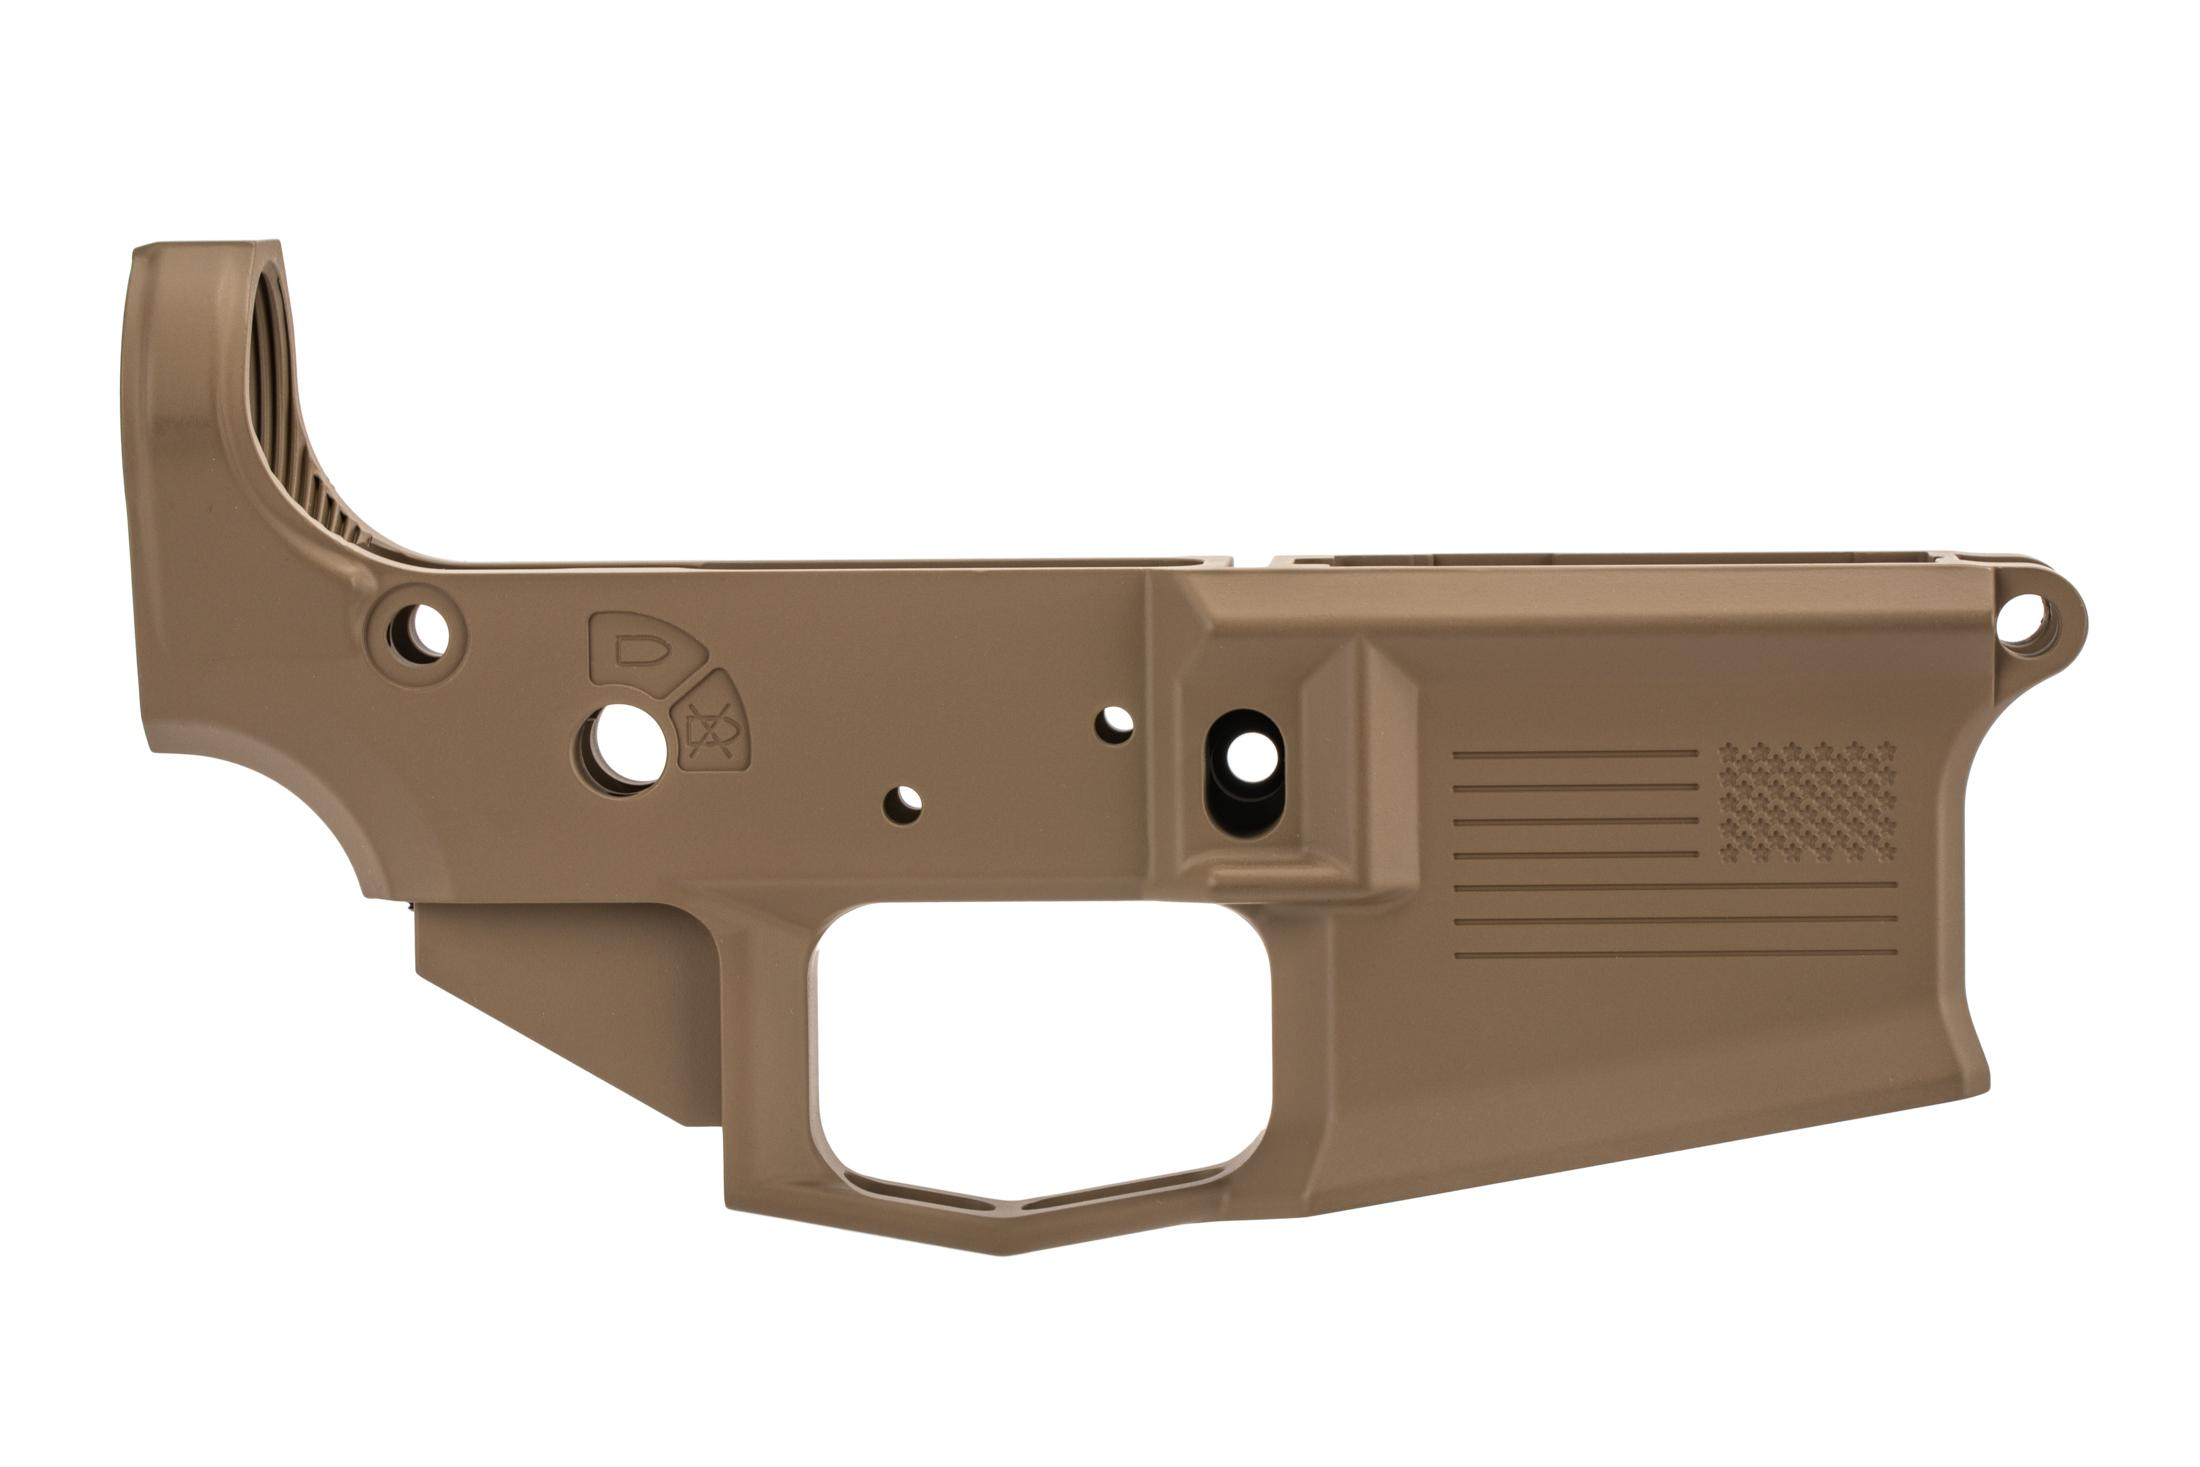 Aero Precision special edition M4E1 stripped AR15 lower with freedom engraving, fde finish, and MULTI caliber marking